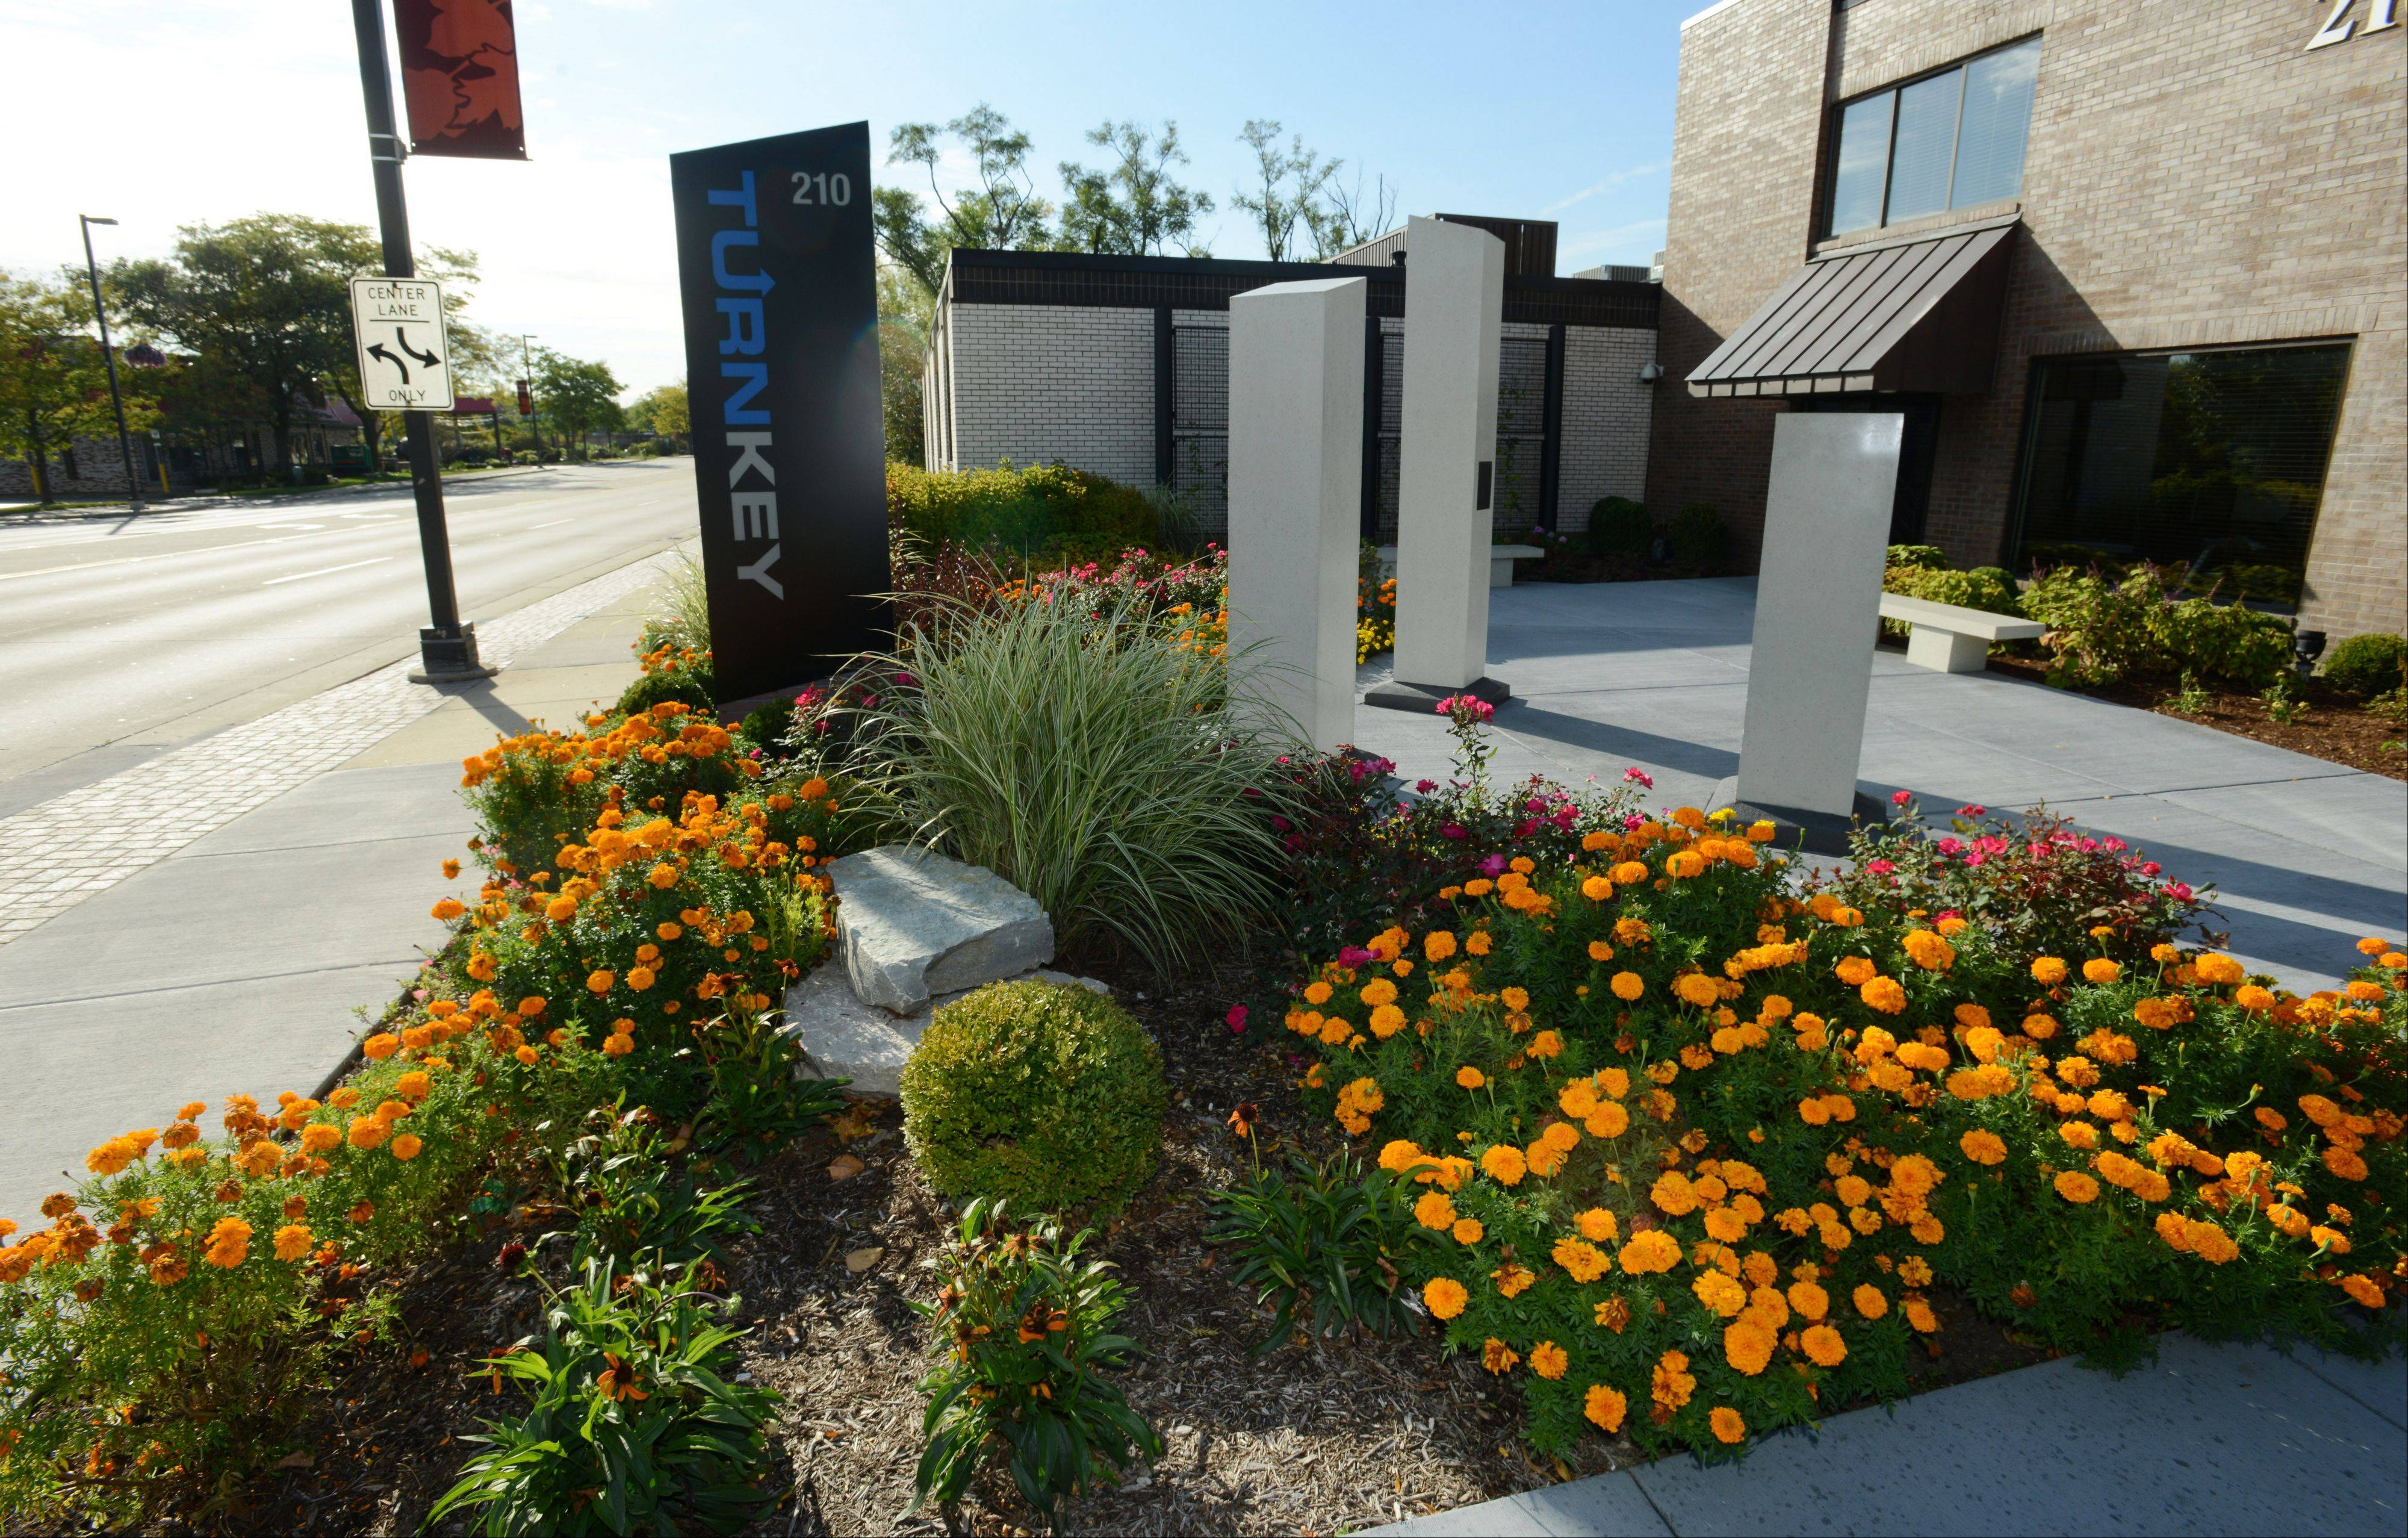 Flowers, tall pillars and concrete benches mark Illumination Park on Milwaukee Avenue in Wheeling.